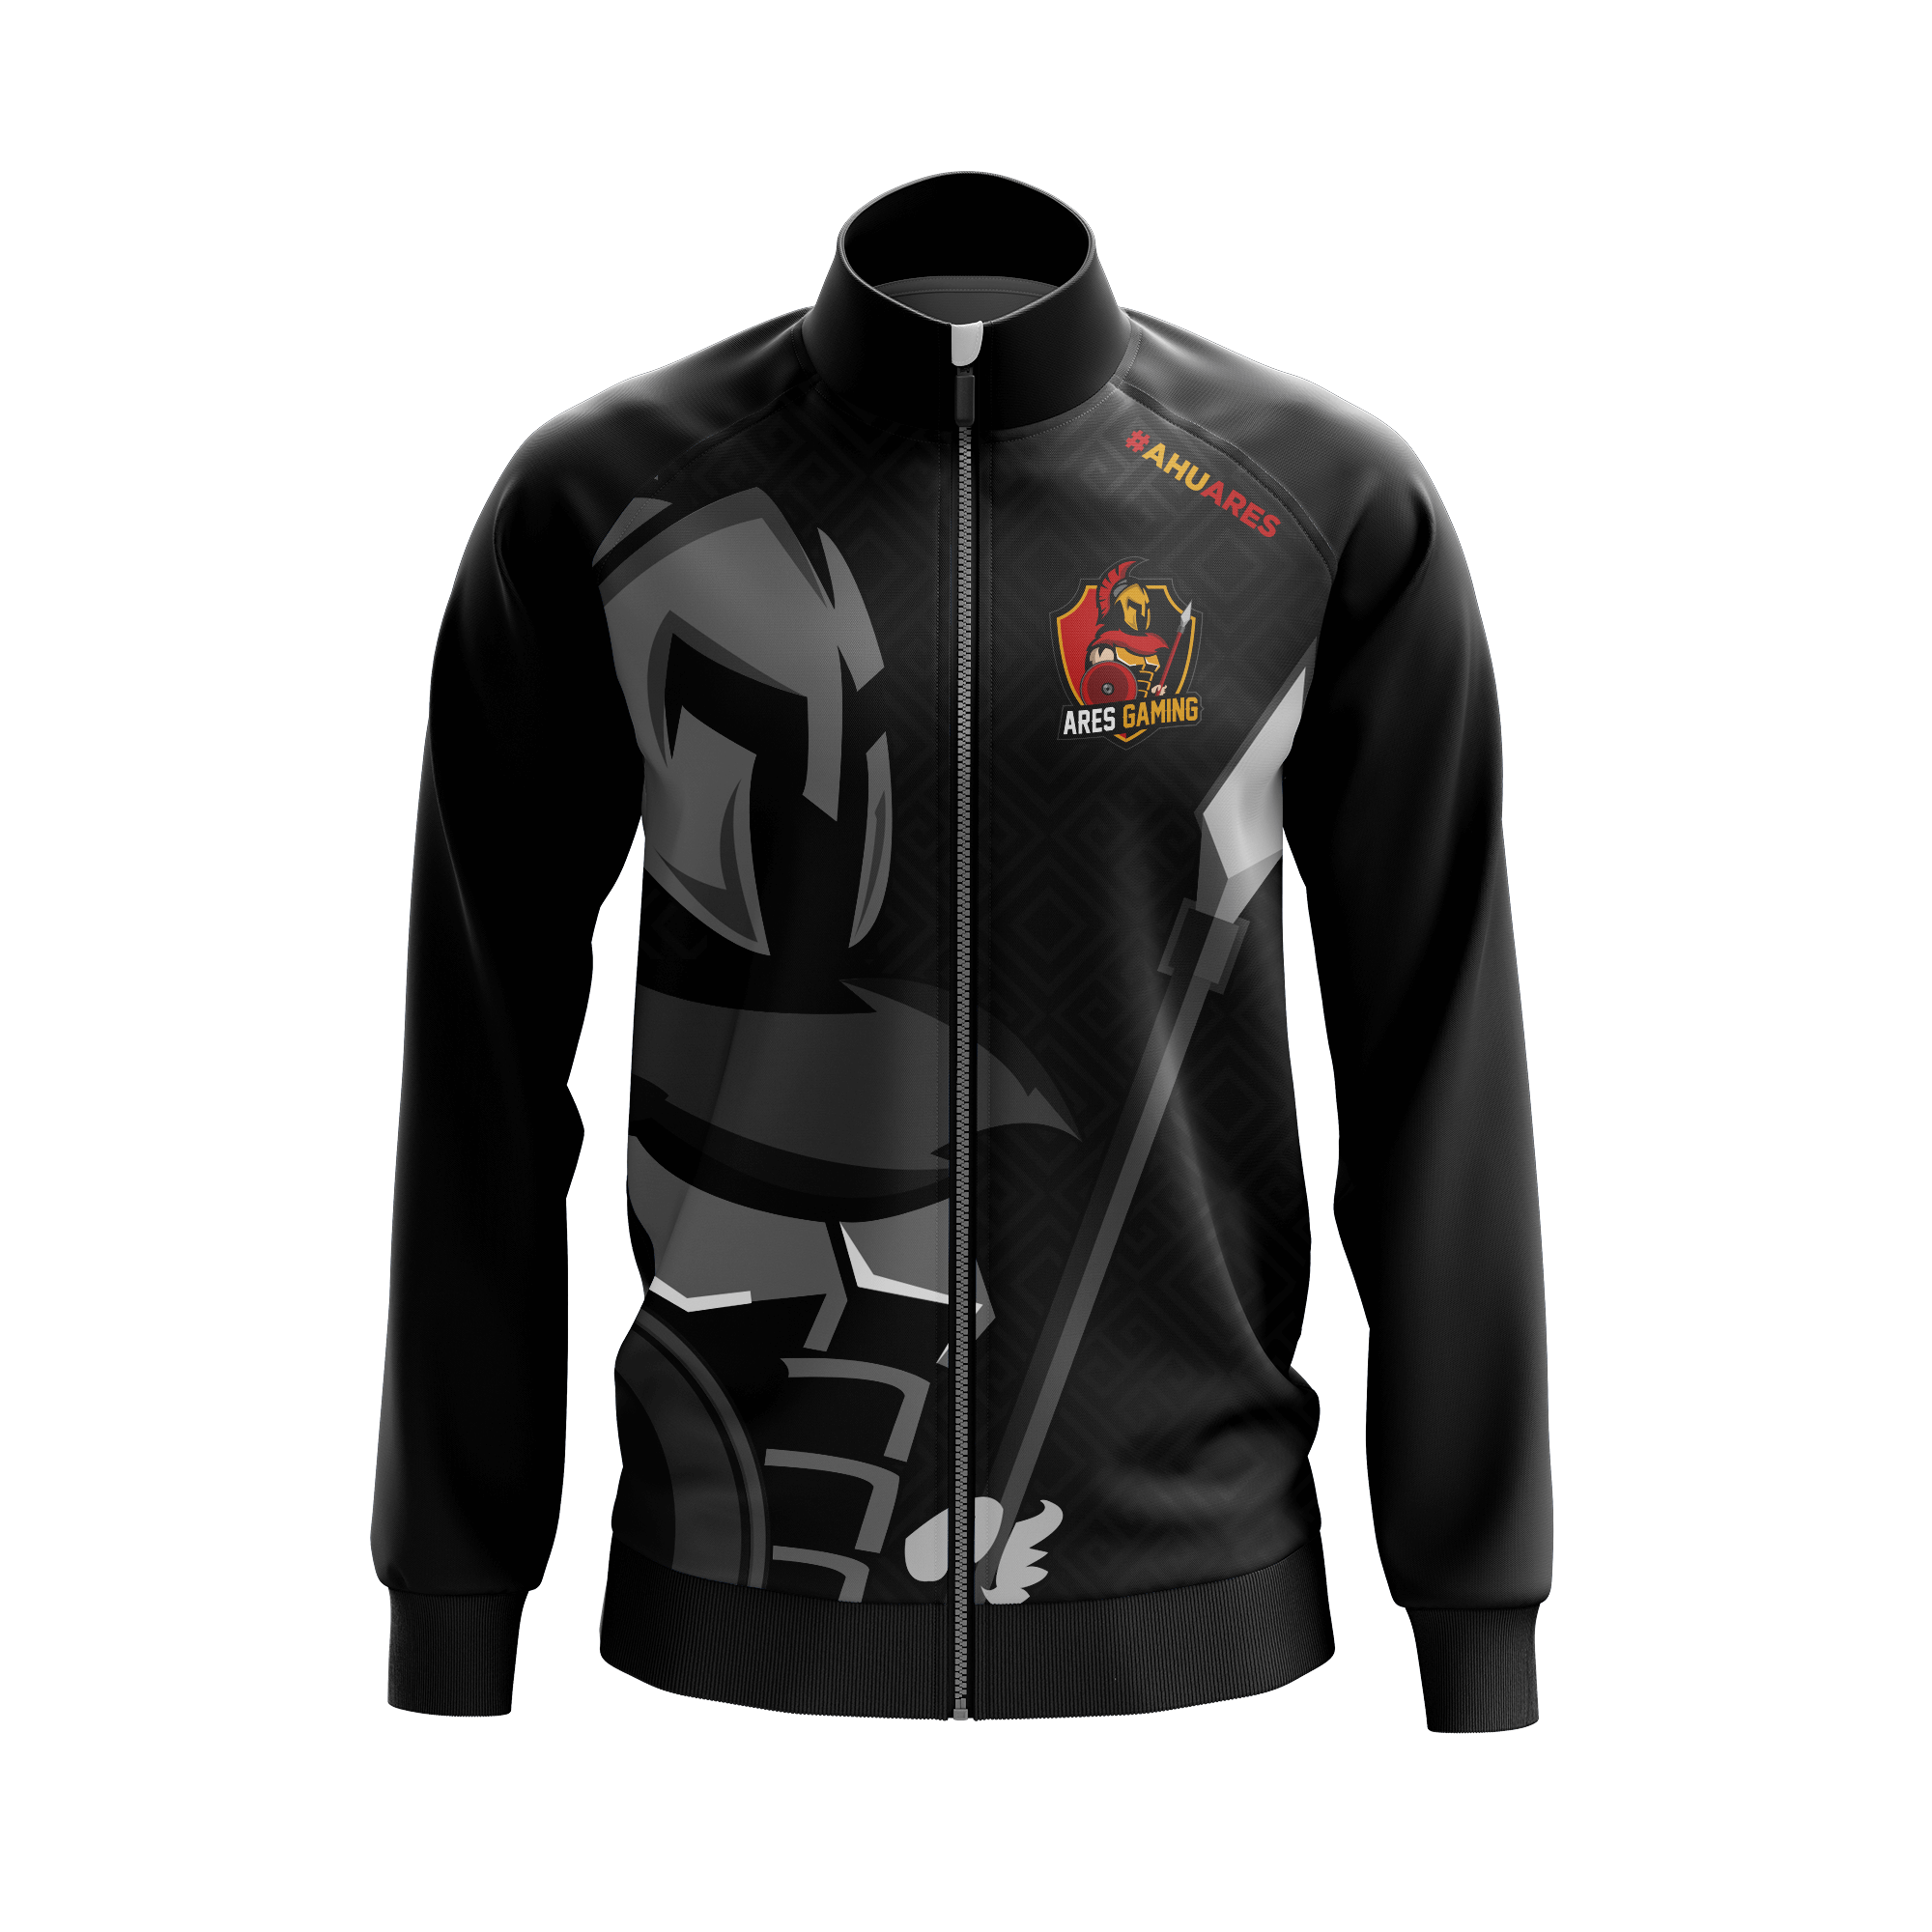 ARES Gaming jacket